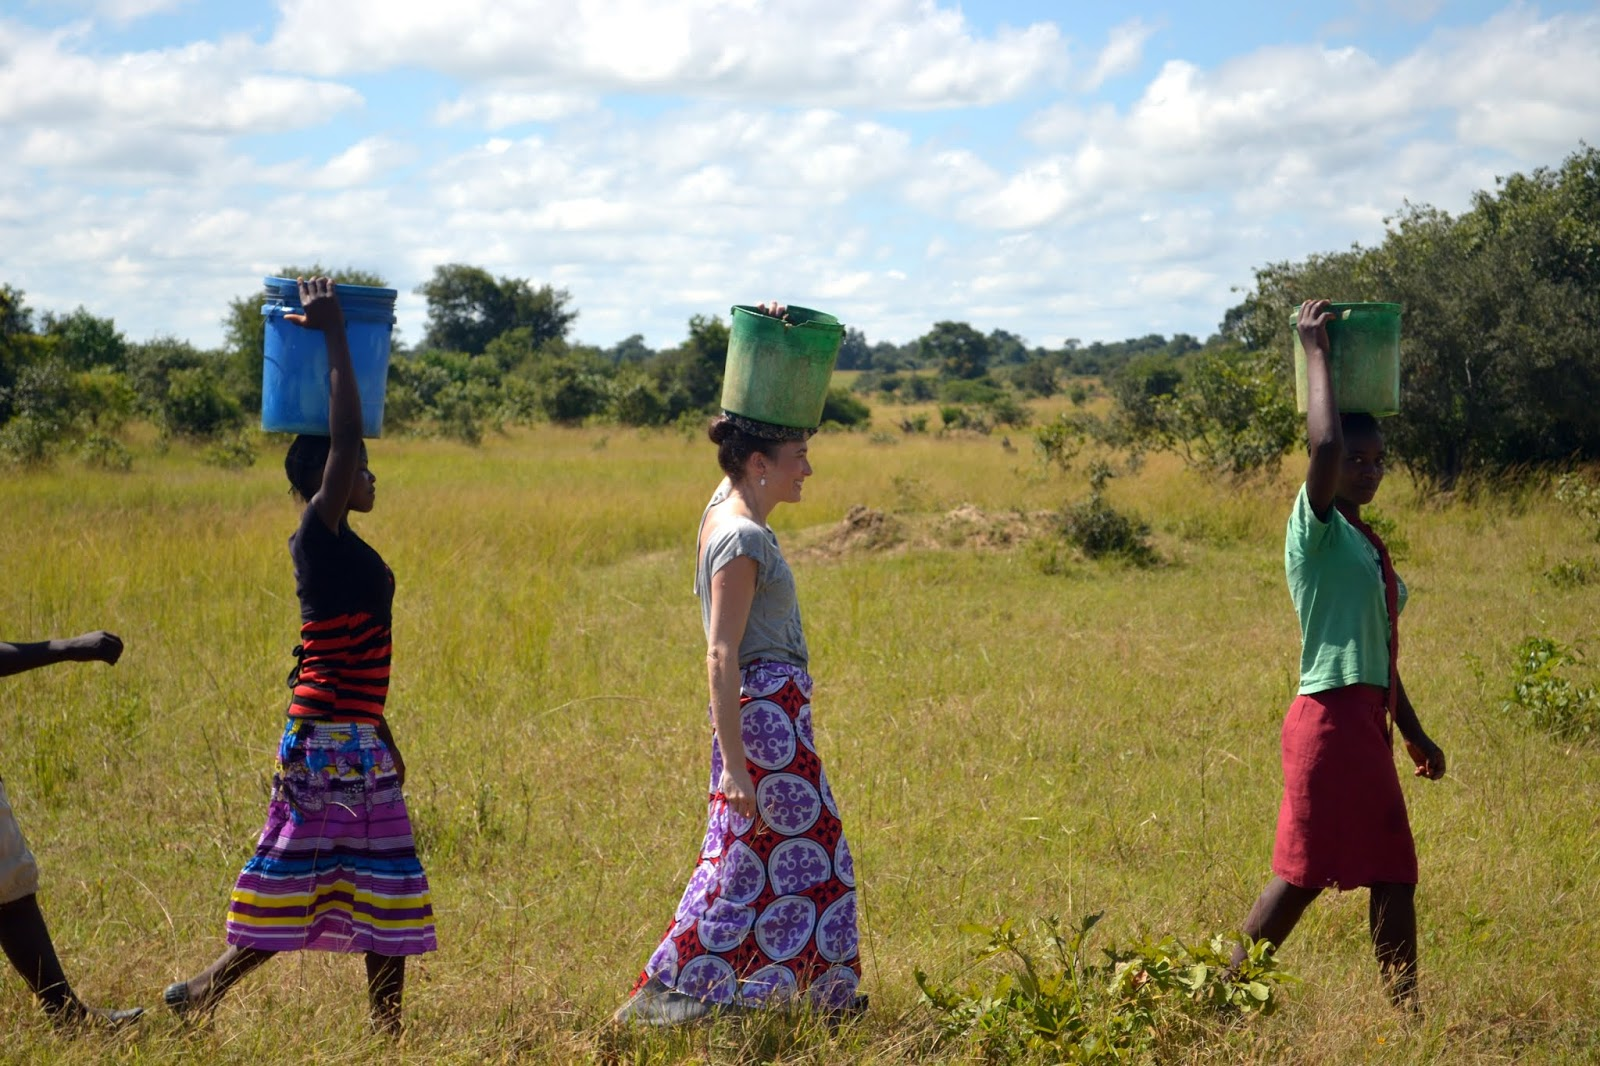 carrying water buckets on head in africa